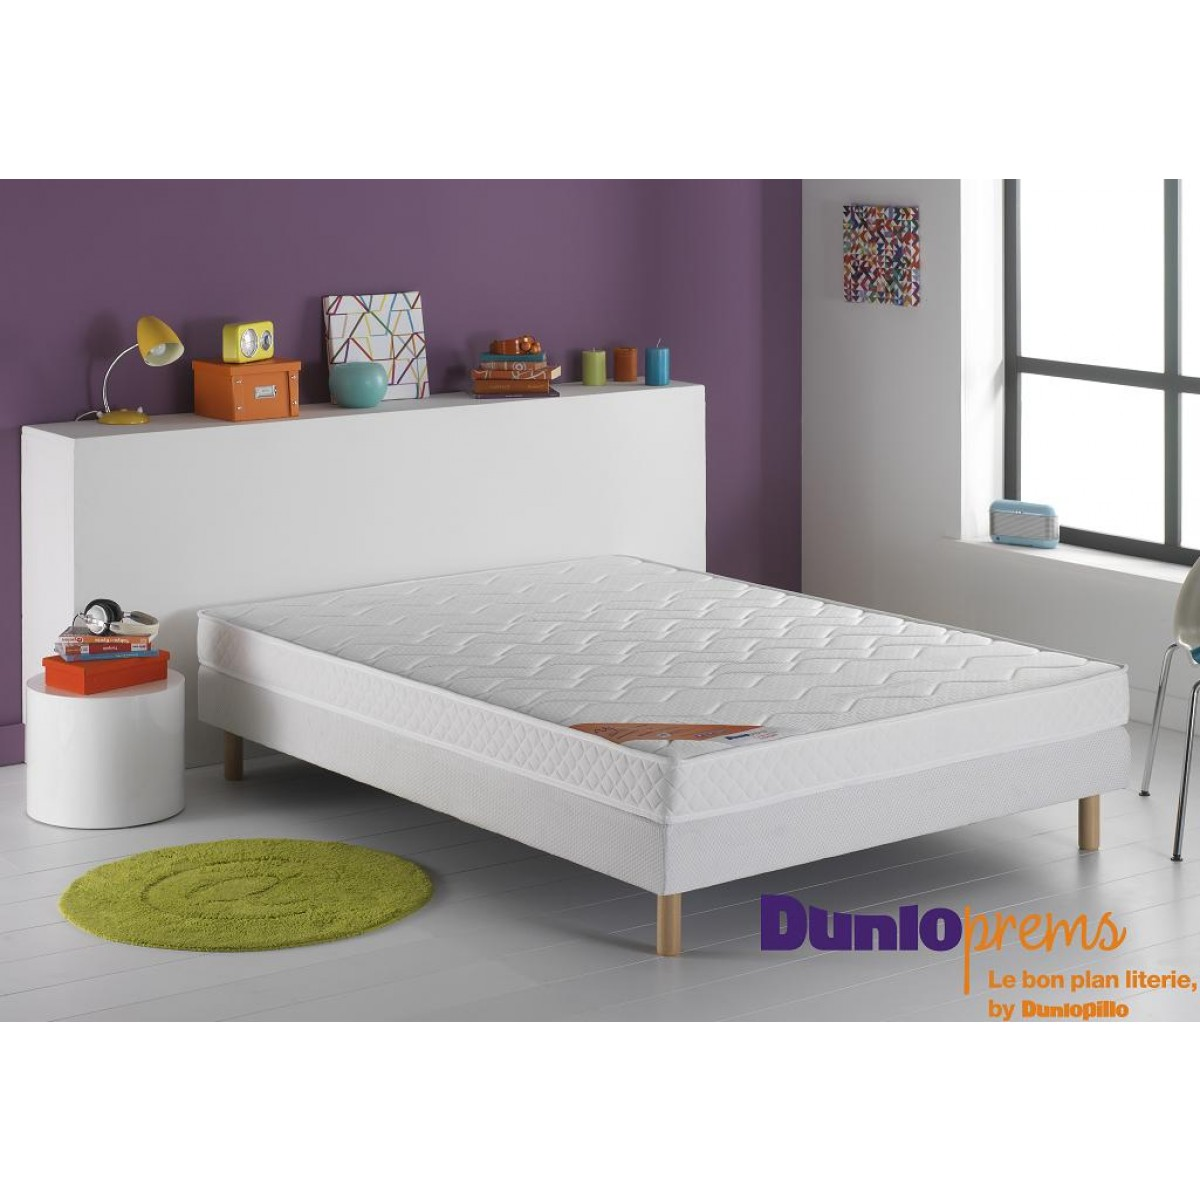 Dunlopillo cmatelas dunloprems up 160x200 - Matelas 160x200 dunlopillo ...